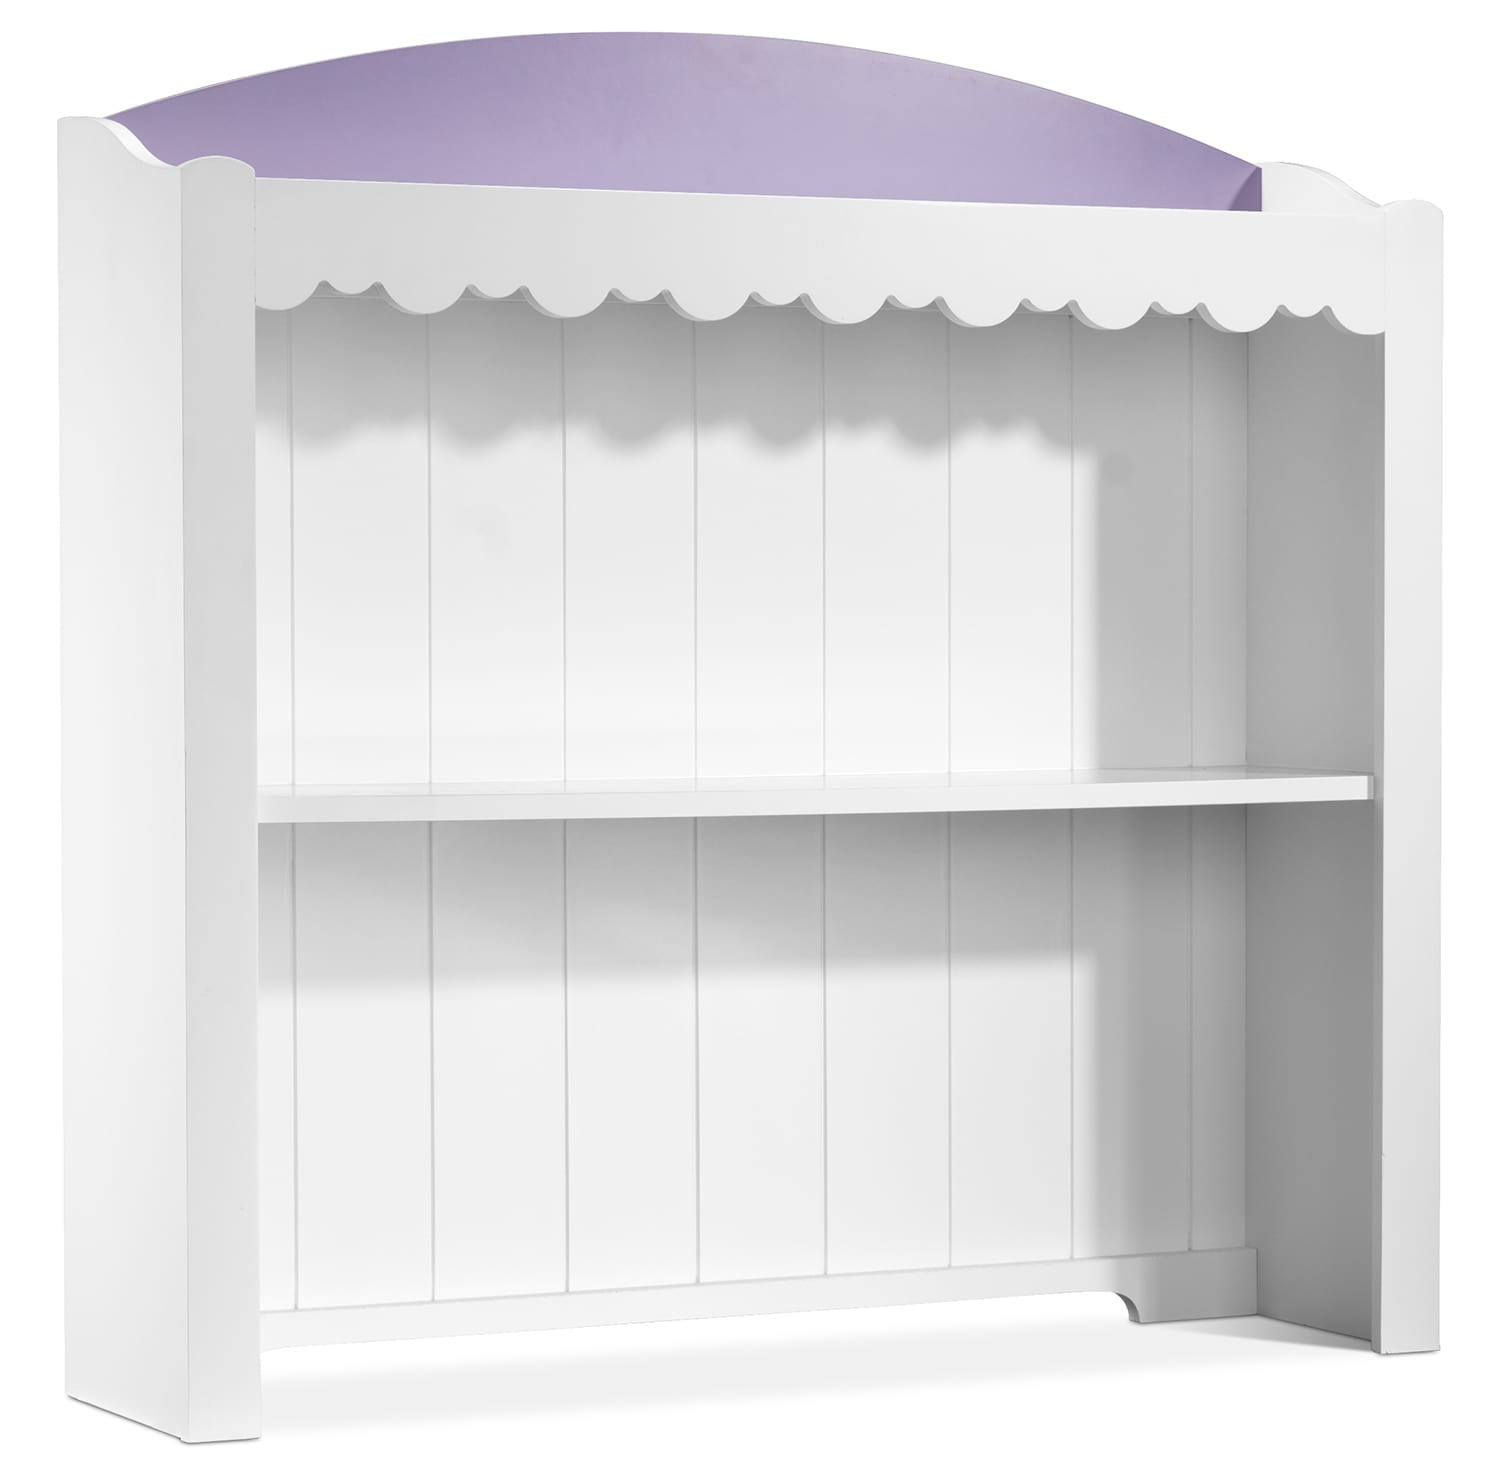 Sweetdreams Desk Hutch - White and Lavender